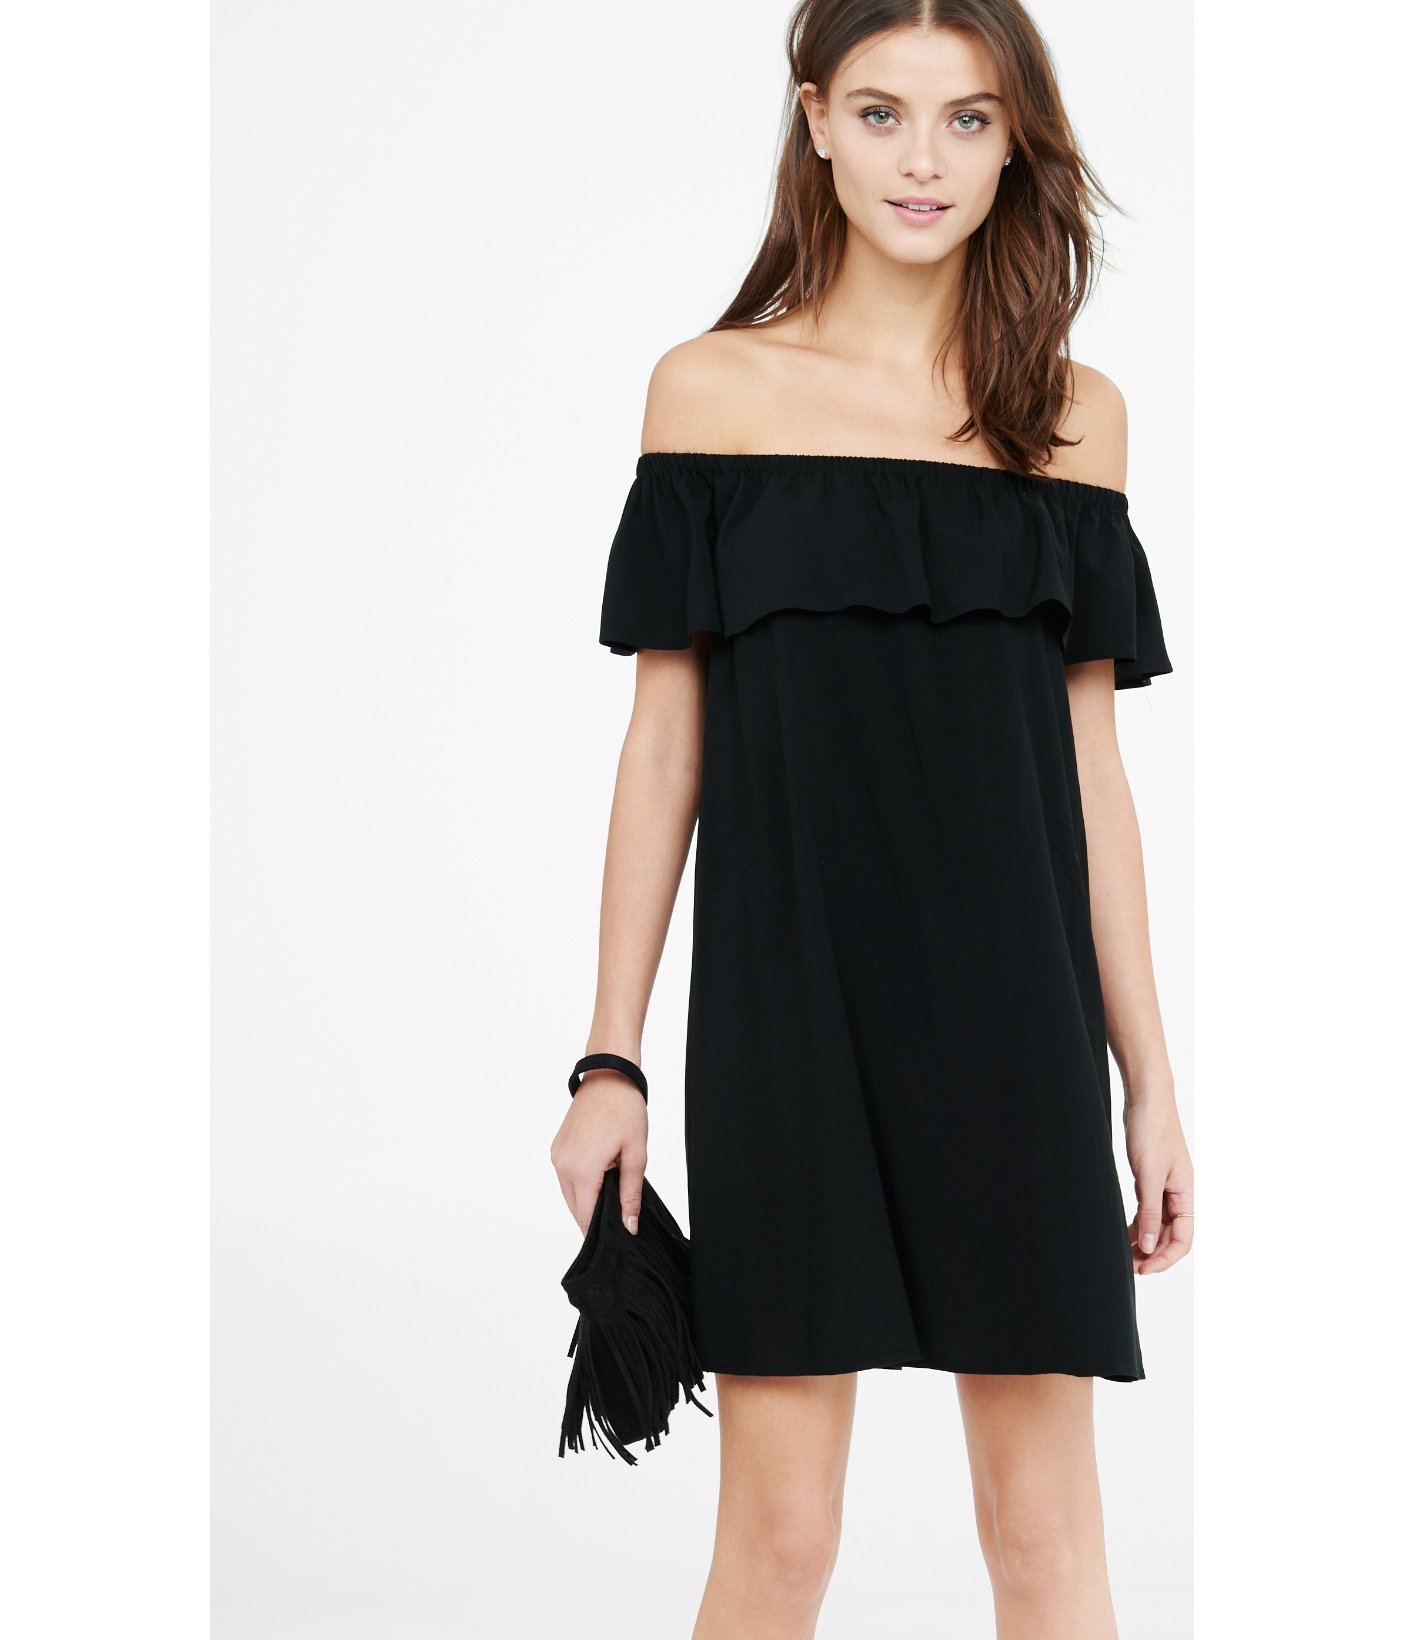 Shop women's cocktail dresses at nazhatie-skachat.gq Discover a stylish selection of the latest brand name and designer fashions all at a great value.